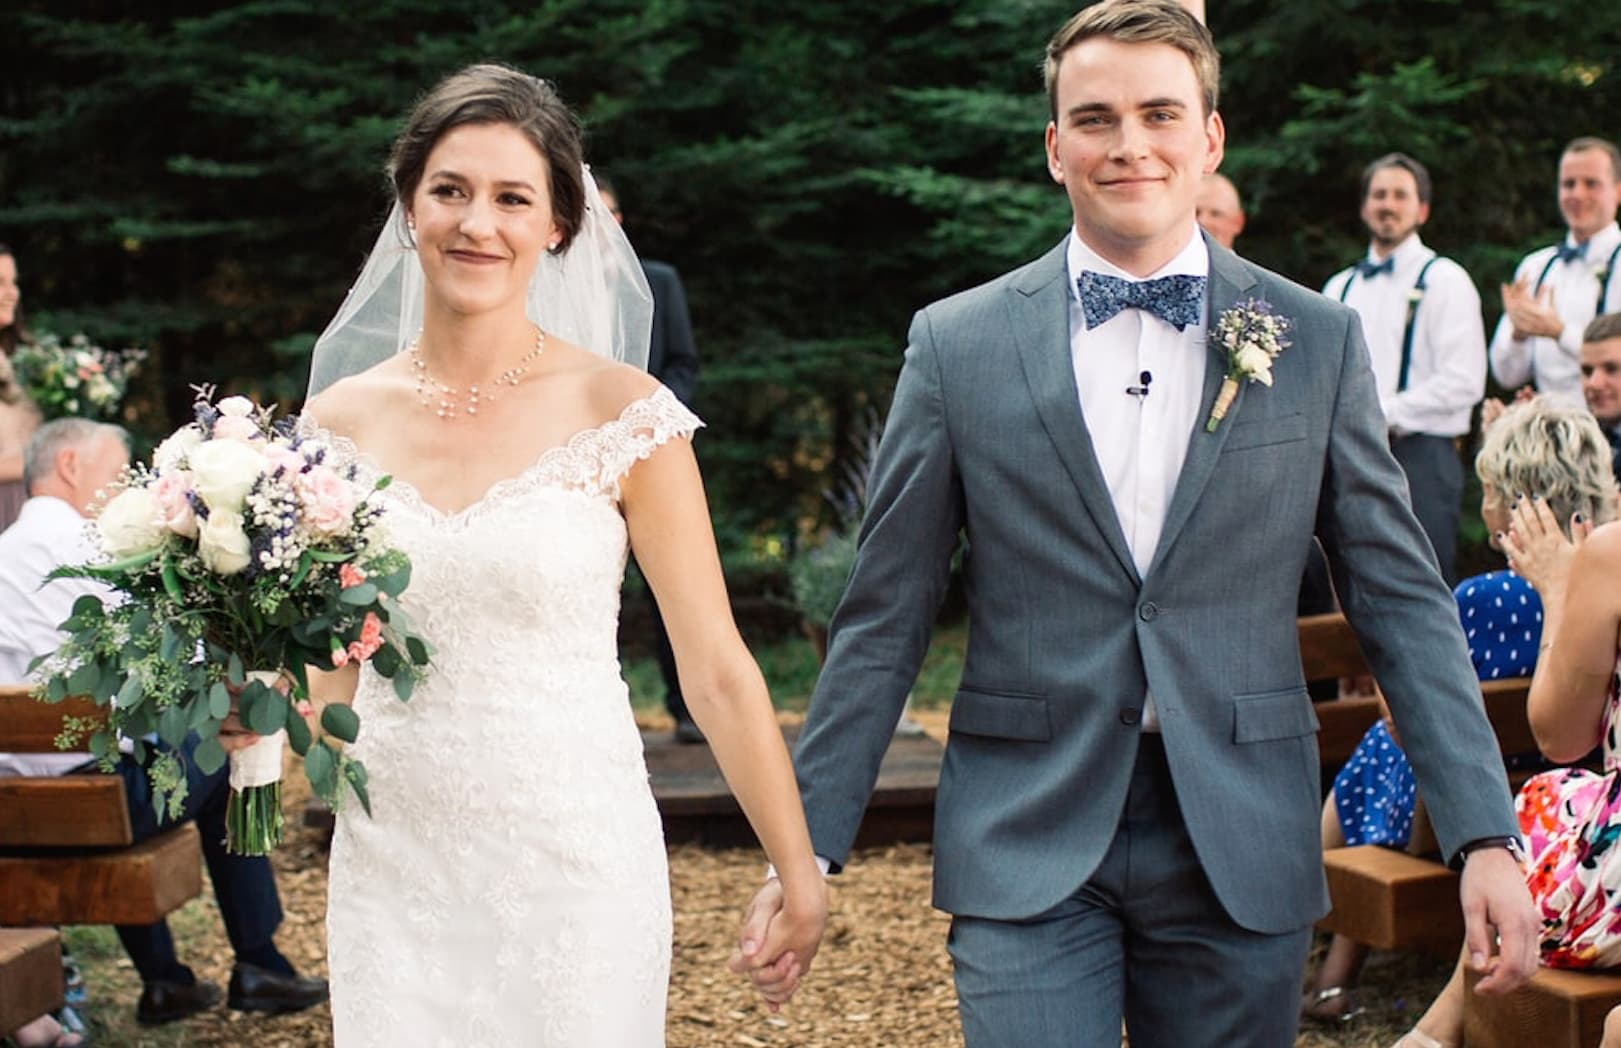 Jeremy roloff weddings the hollywood gossip molly roloff wedding pics little people big day junglespirit Choice Image